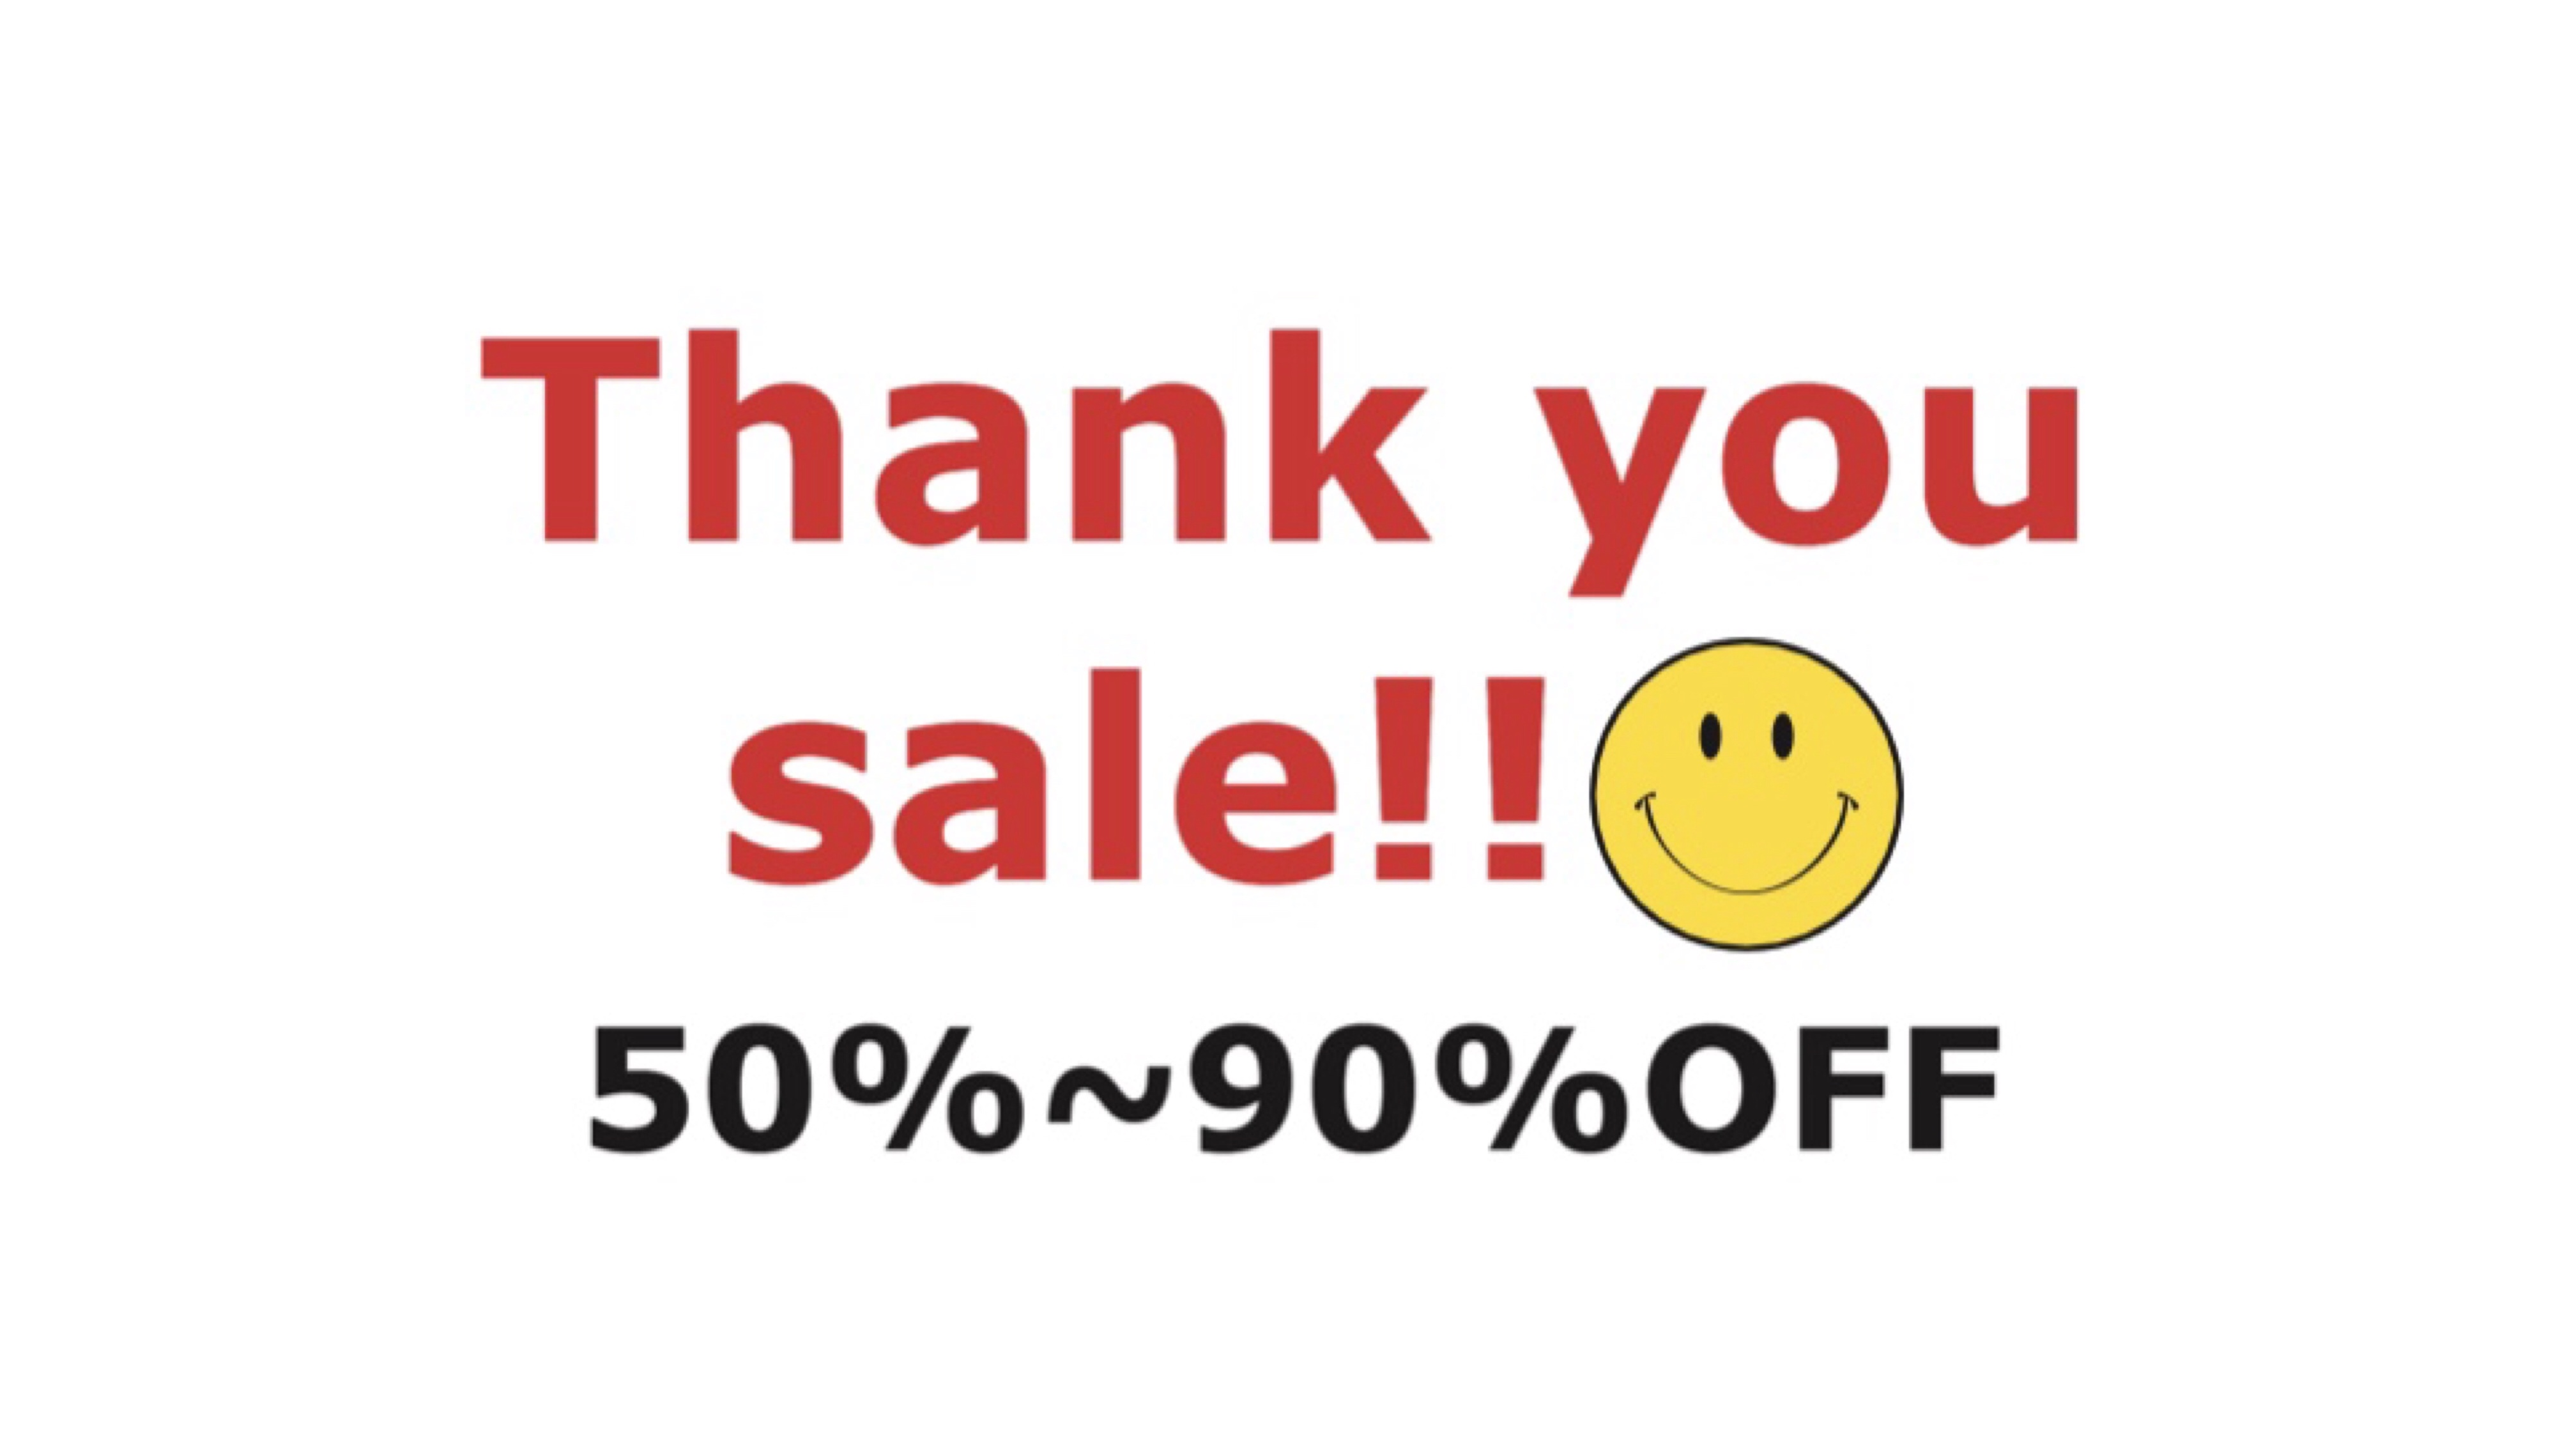 Thank you sale